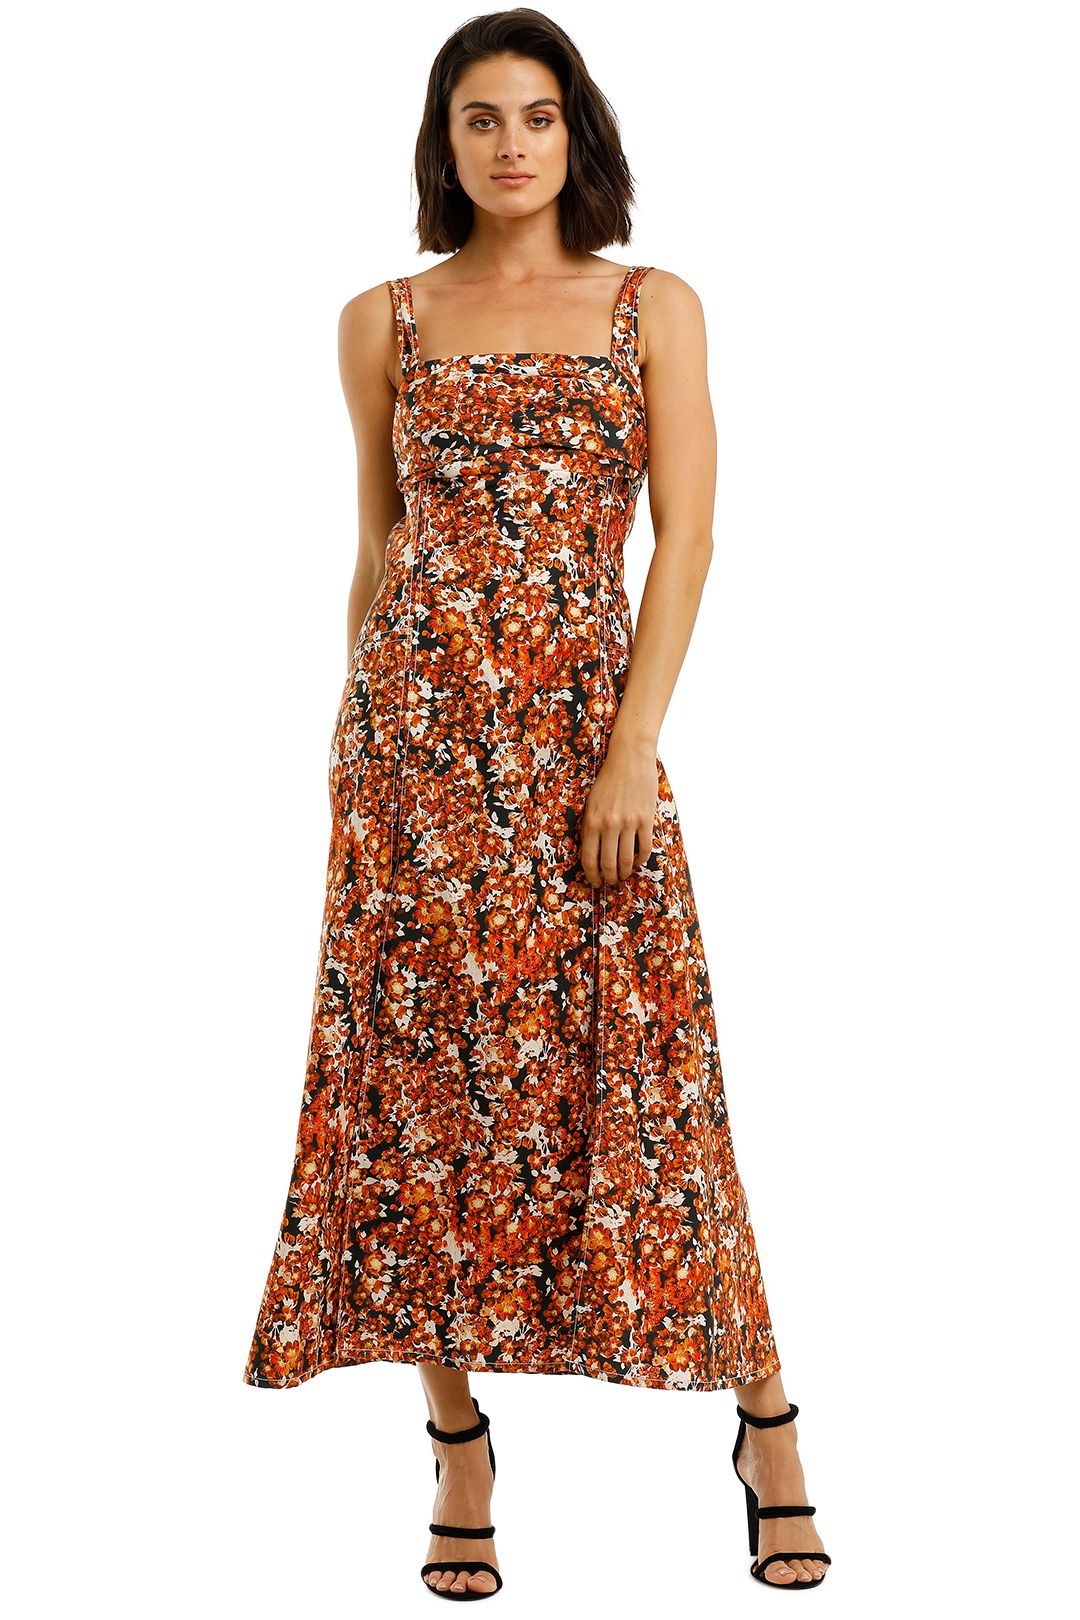 Camilla-and-Marc-Asterid-Midi-Dress-Front